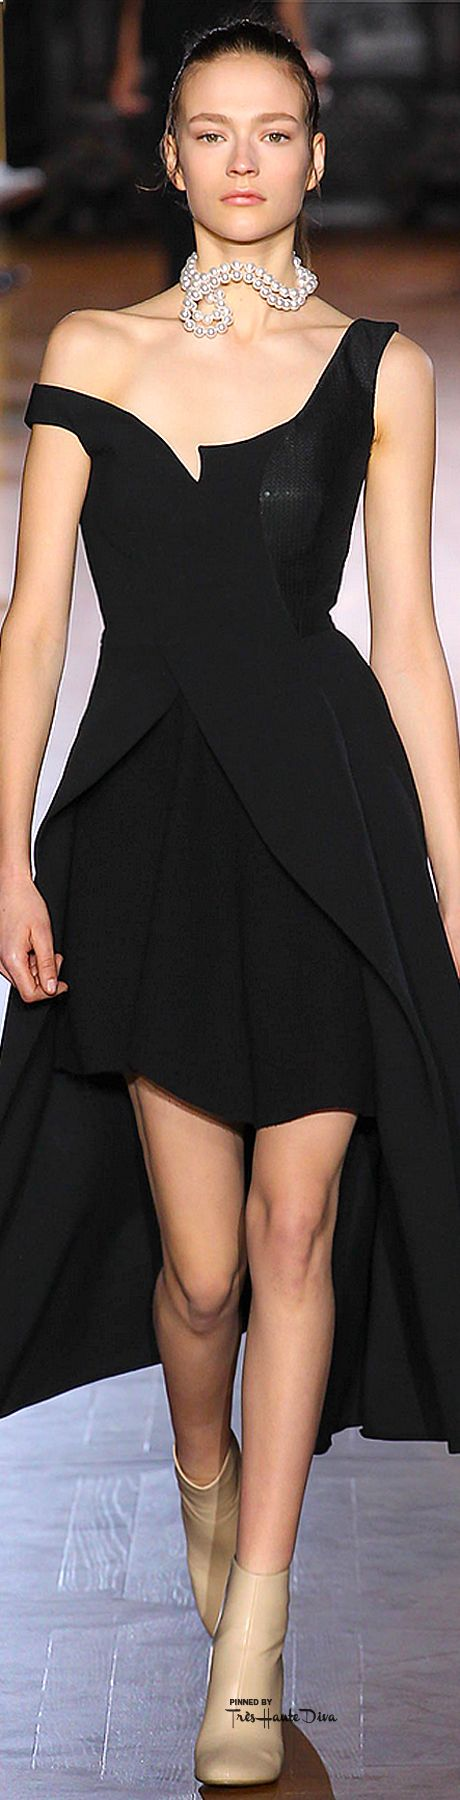 #PFW Stella McCartney Fall 2015 ♔THD♔ More of this collection on my Paris Fall 2015 RTW Fashion board.                                                                                                                                                     More